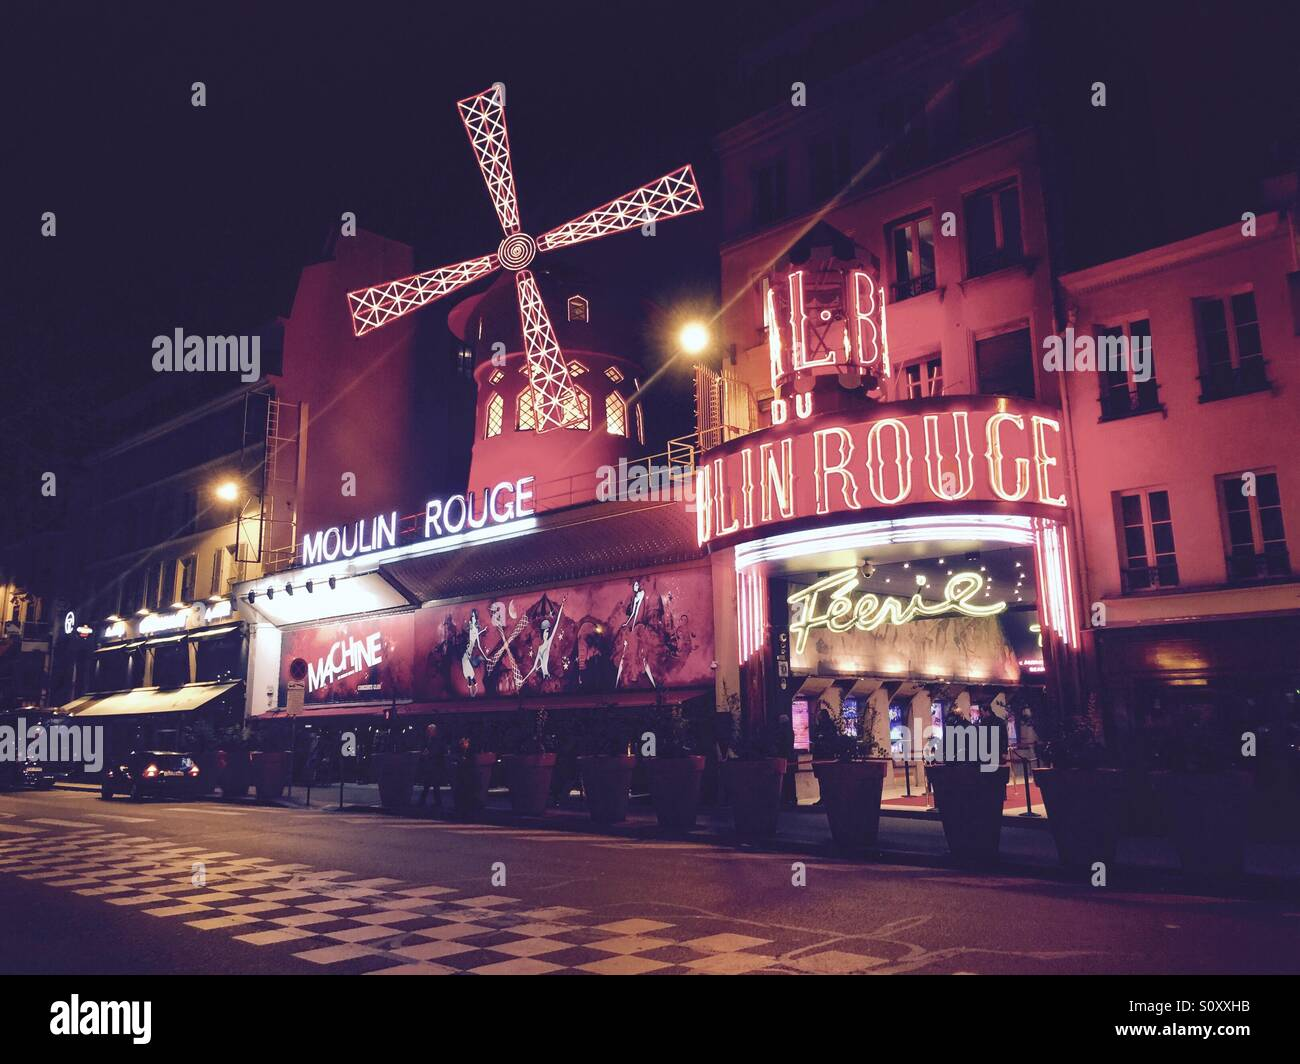 Moulin Rouge - Stock Image